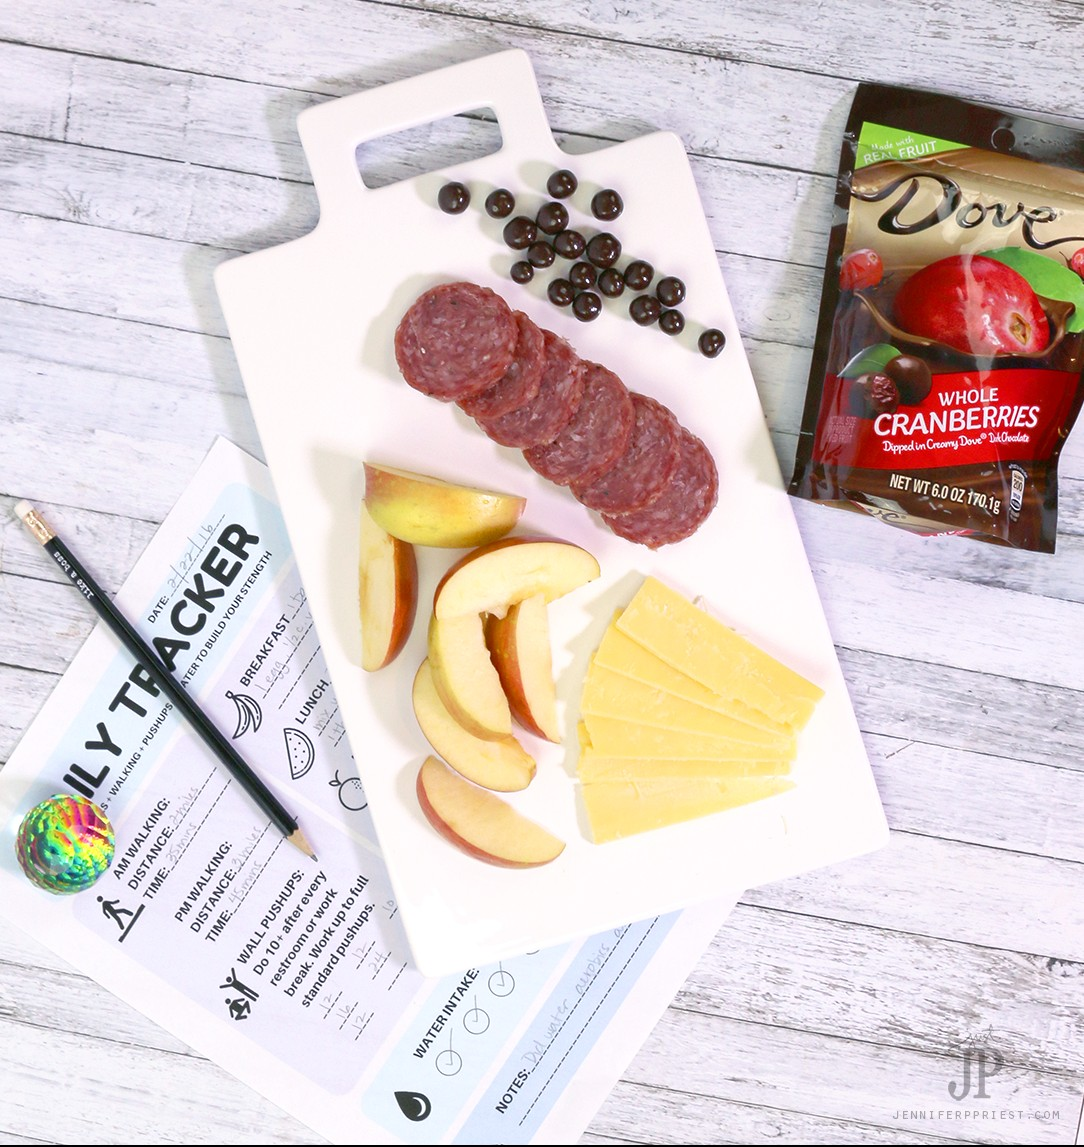 Add-DOVE-Chocolate-Fruit-and-Nut-to-Charcuterie-JustJP-Jenniferppriest